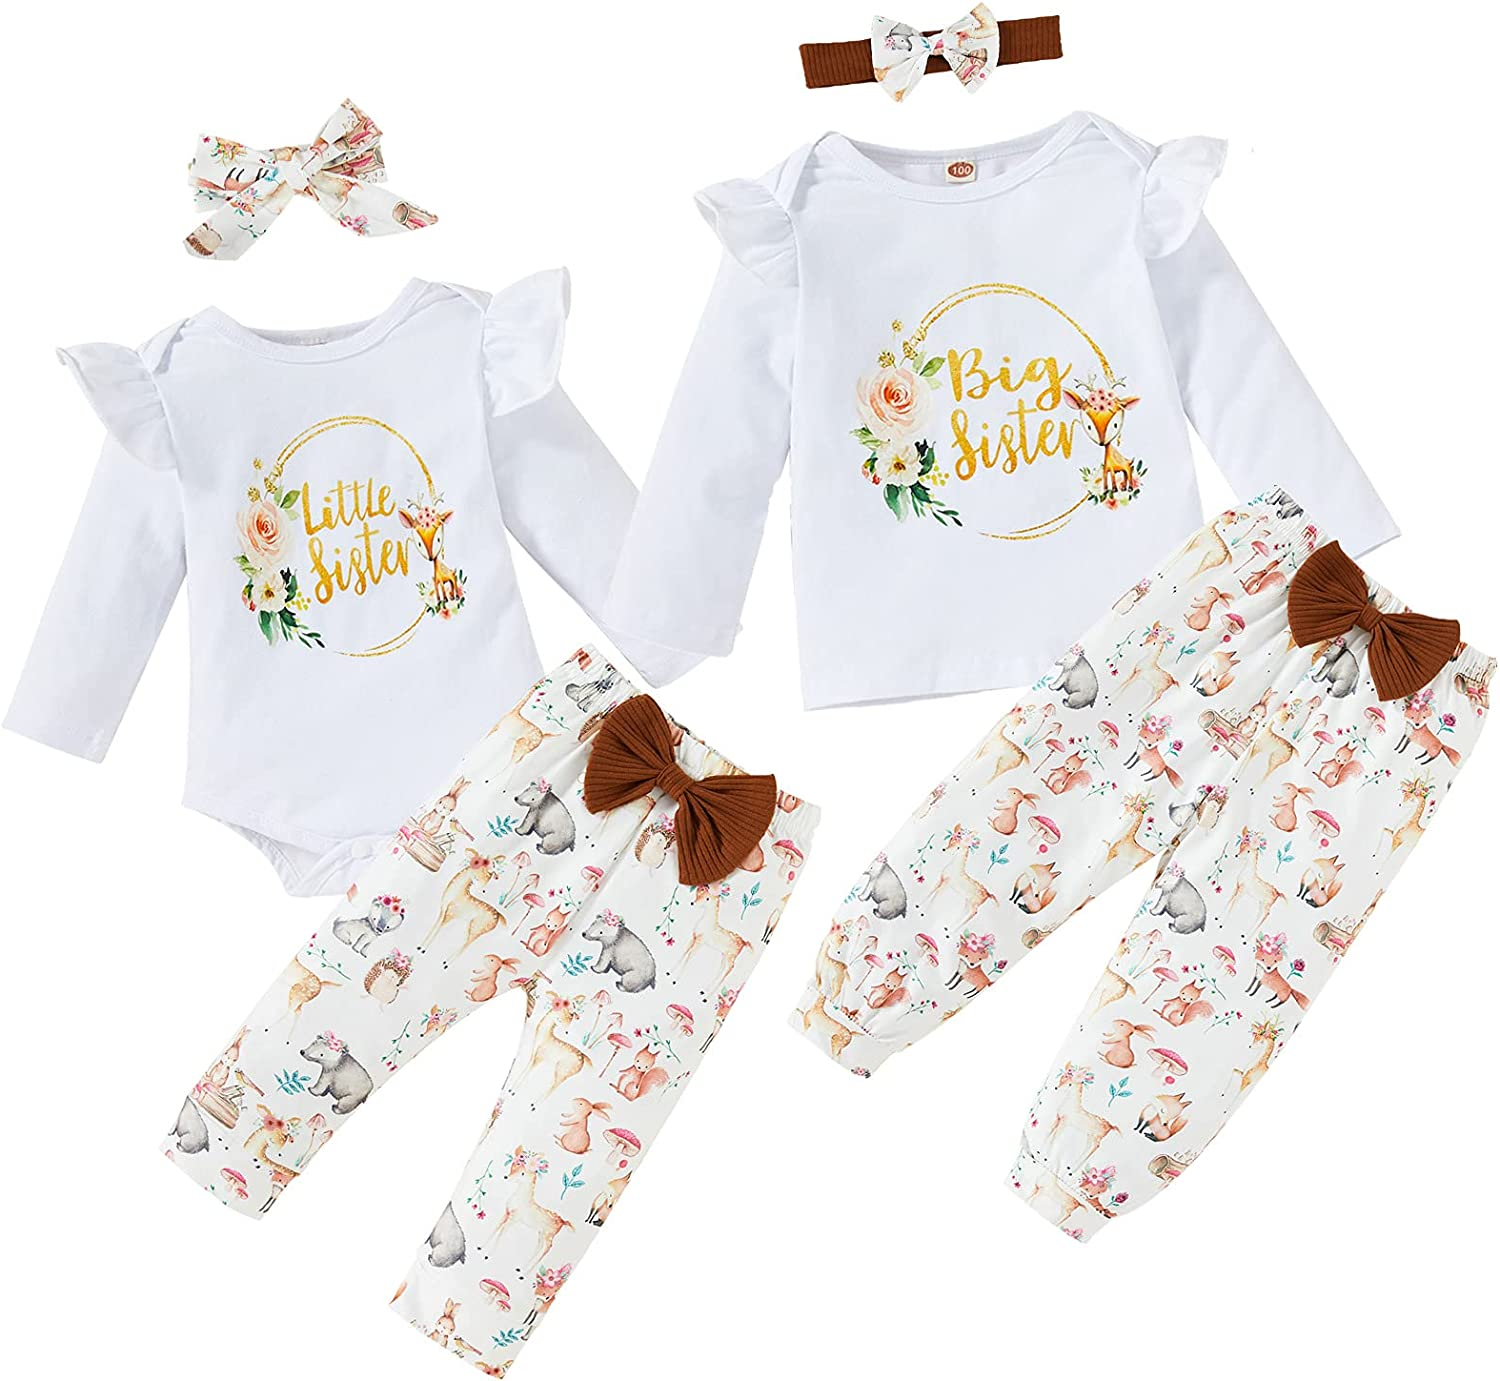 Baby Girl Sister Matching Outfits Little Big Sister Prited Floral Romper Top Animal Legging Pants with Headband 3Pcs Outfits